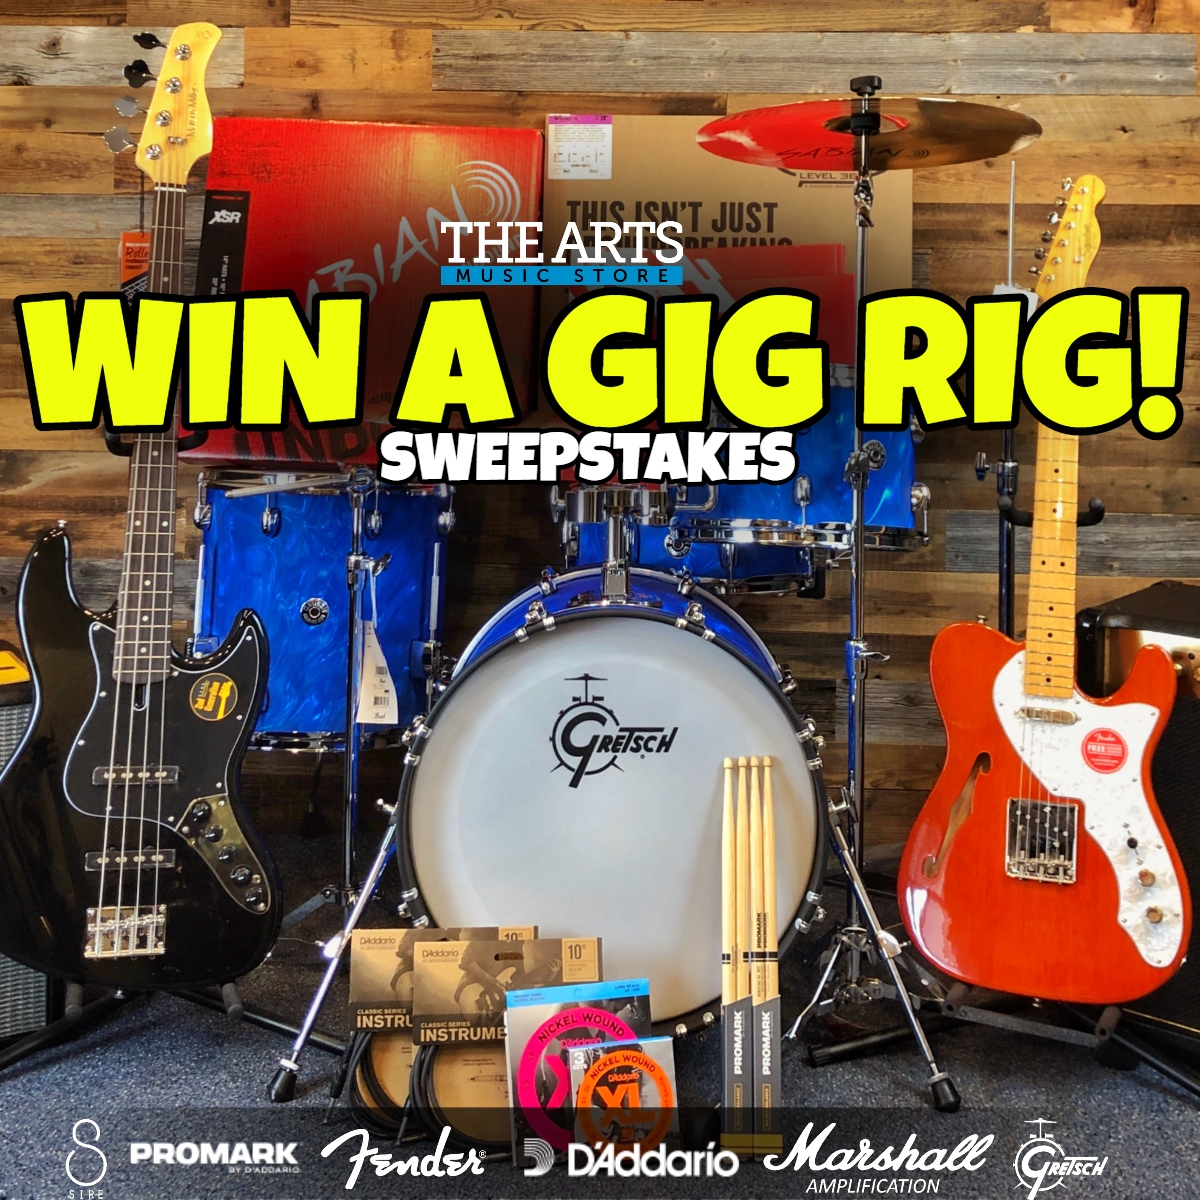 online contests, sweepstakes and giveaways - Win a Gig Rig!